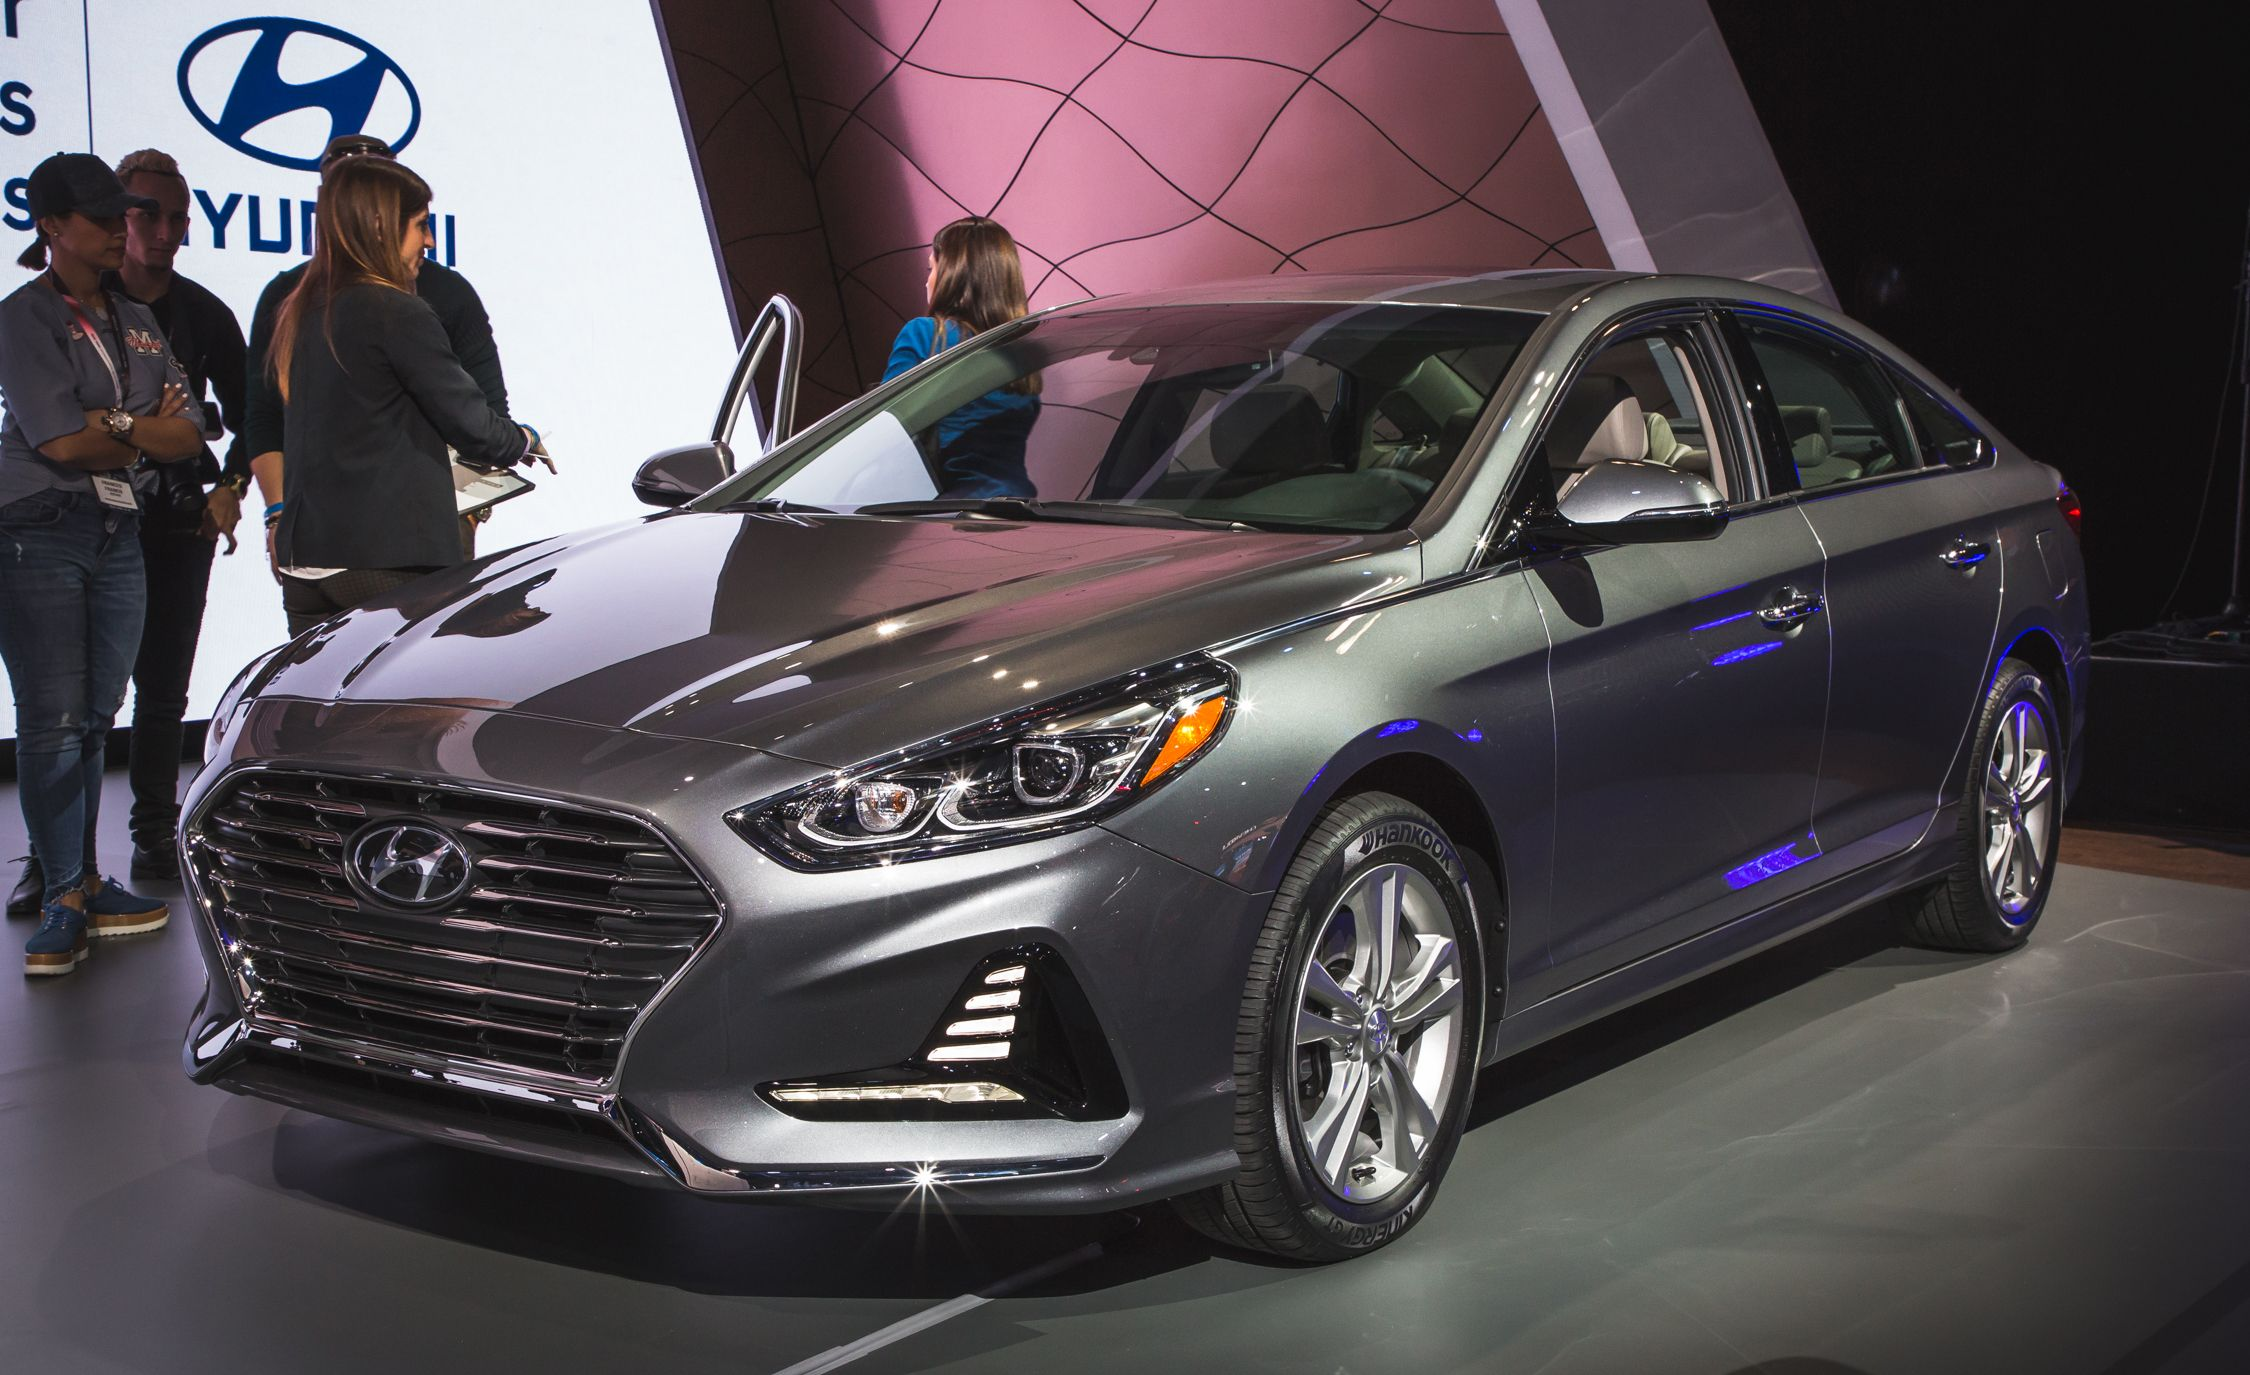 2018 Hyundai Sonata Photos And Info News Car And Driver